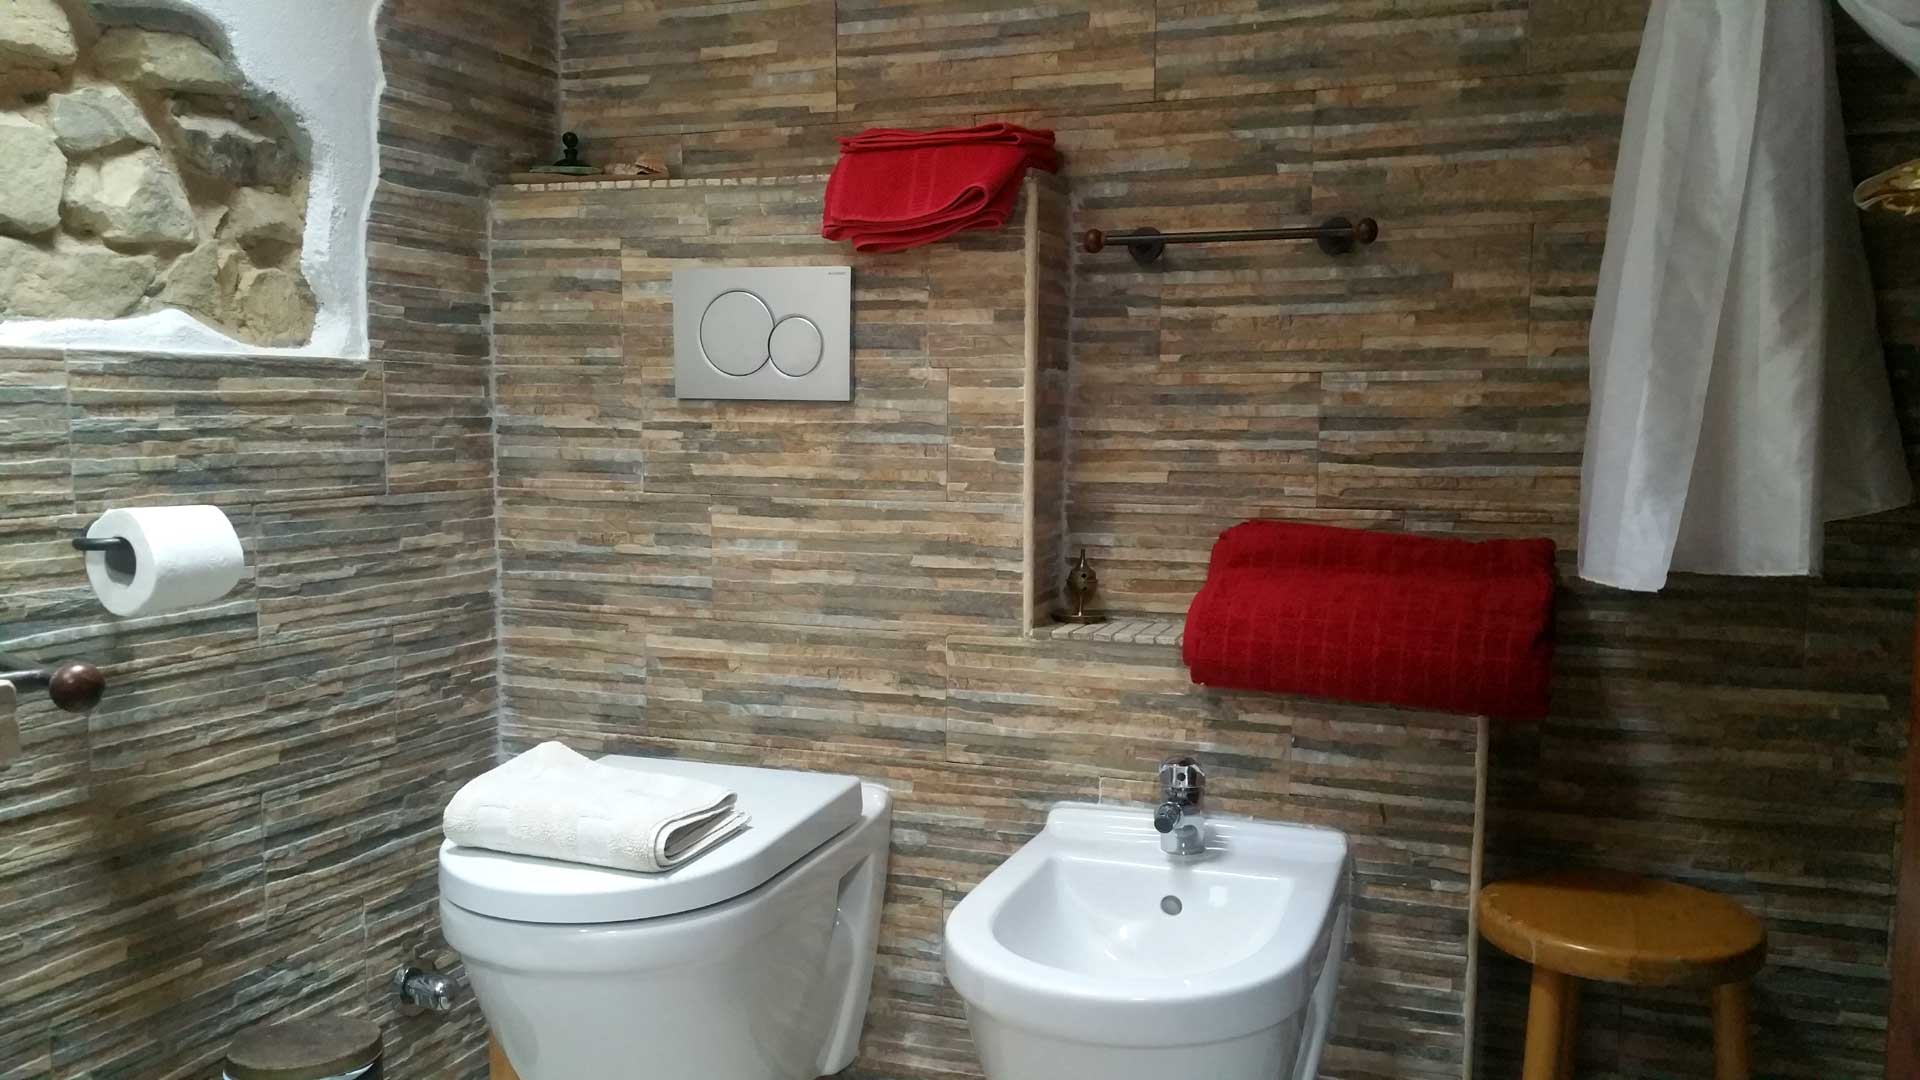 Bagno camera 900 wc bidet B&B & Meditation Center Zorba il Buddha Passerano Marmorito Asti